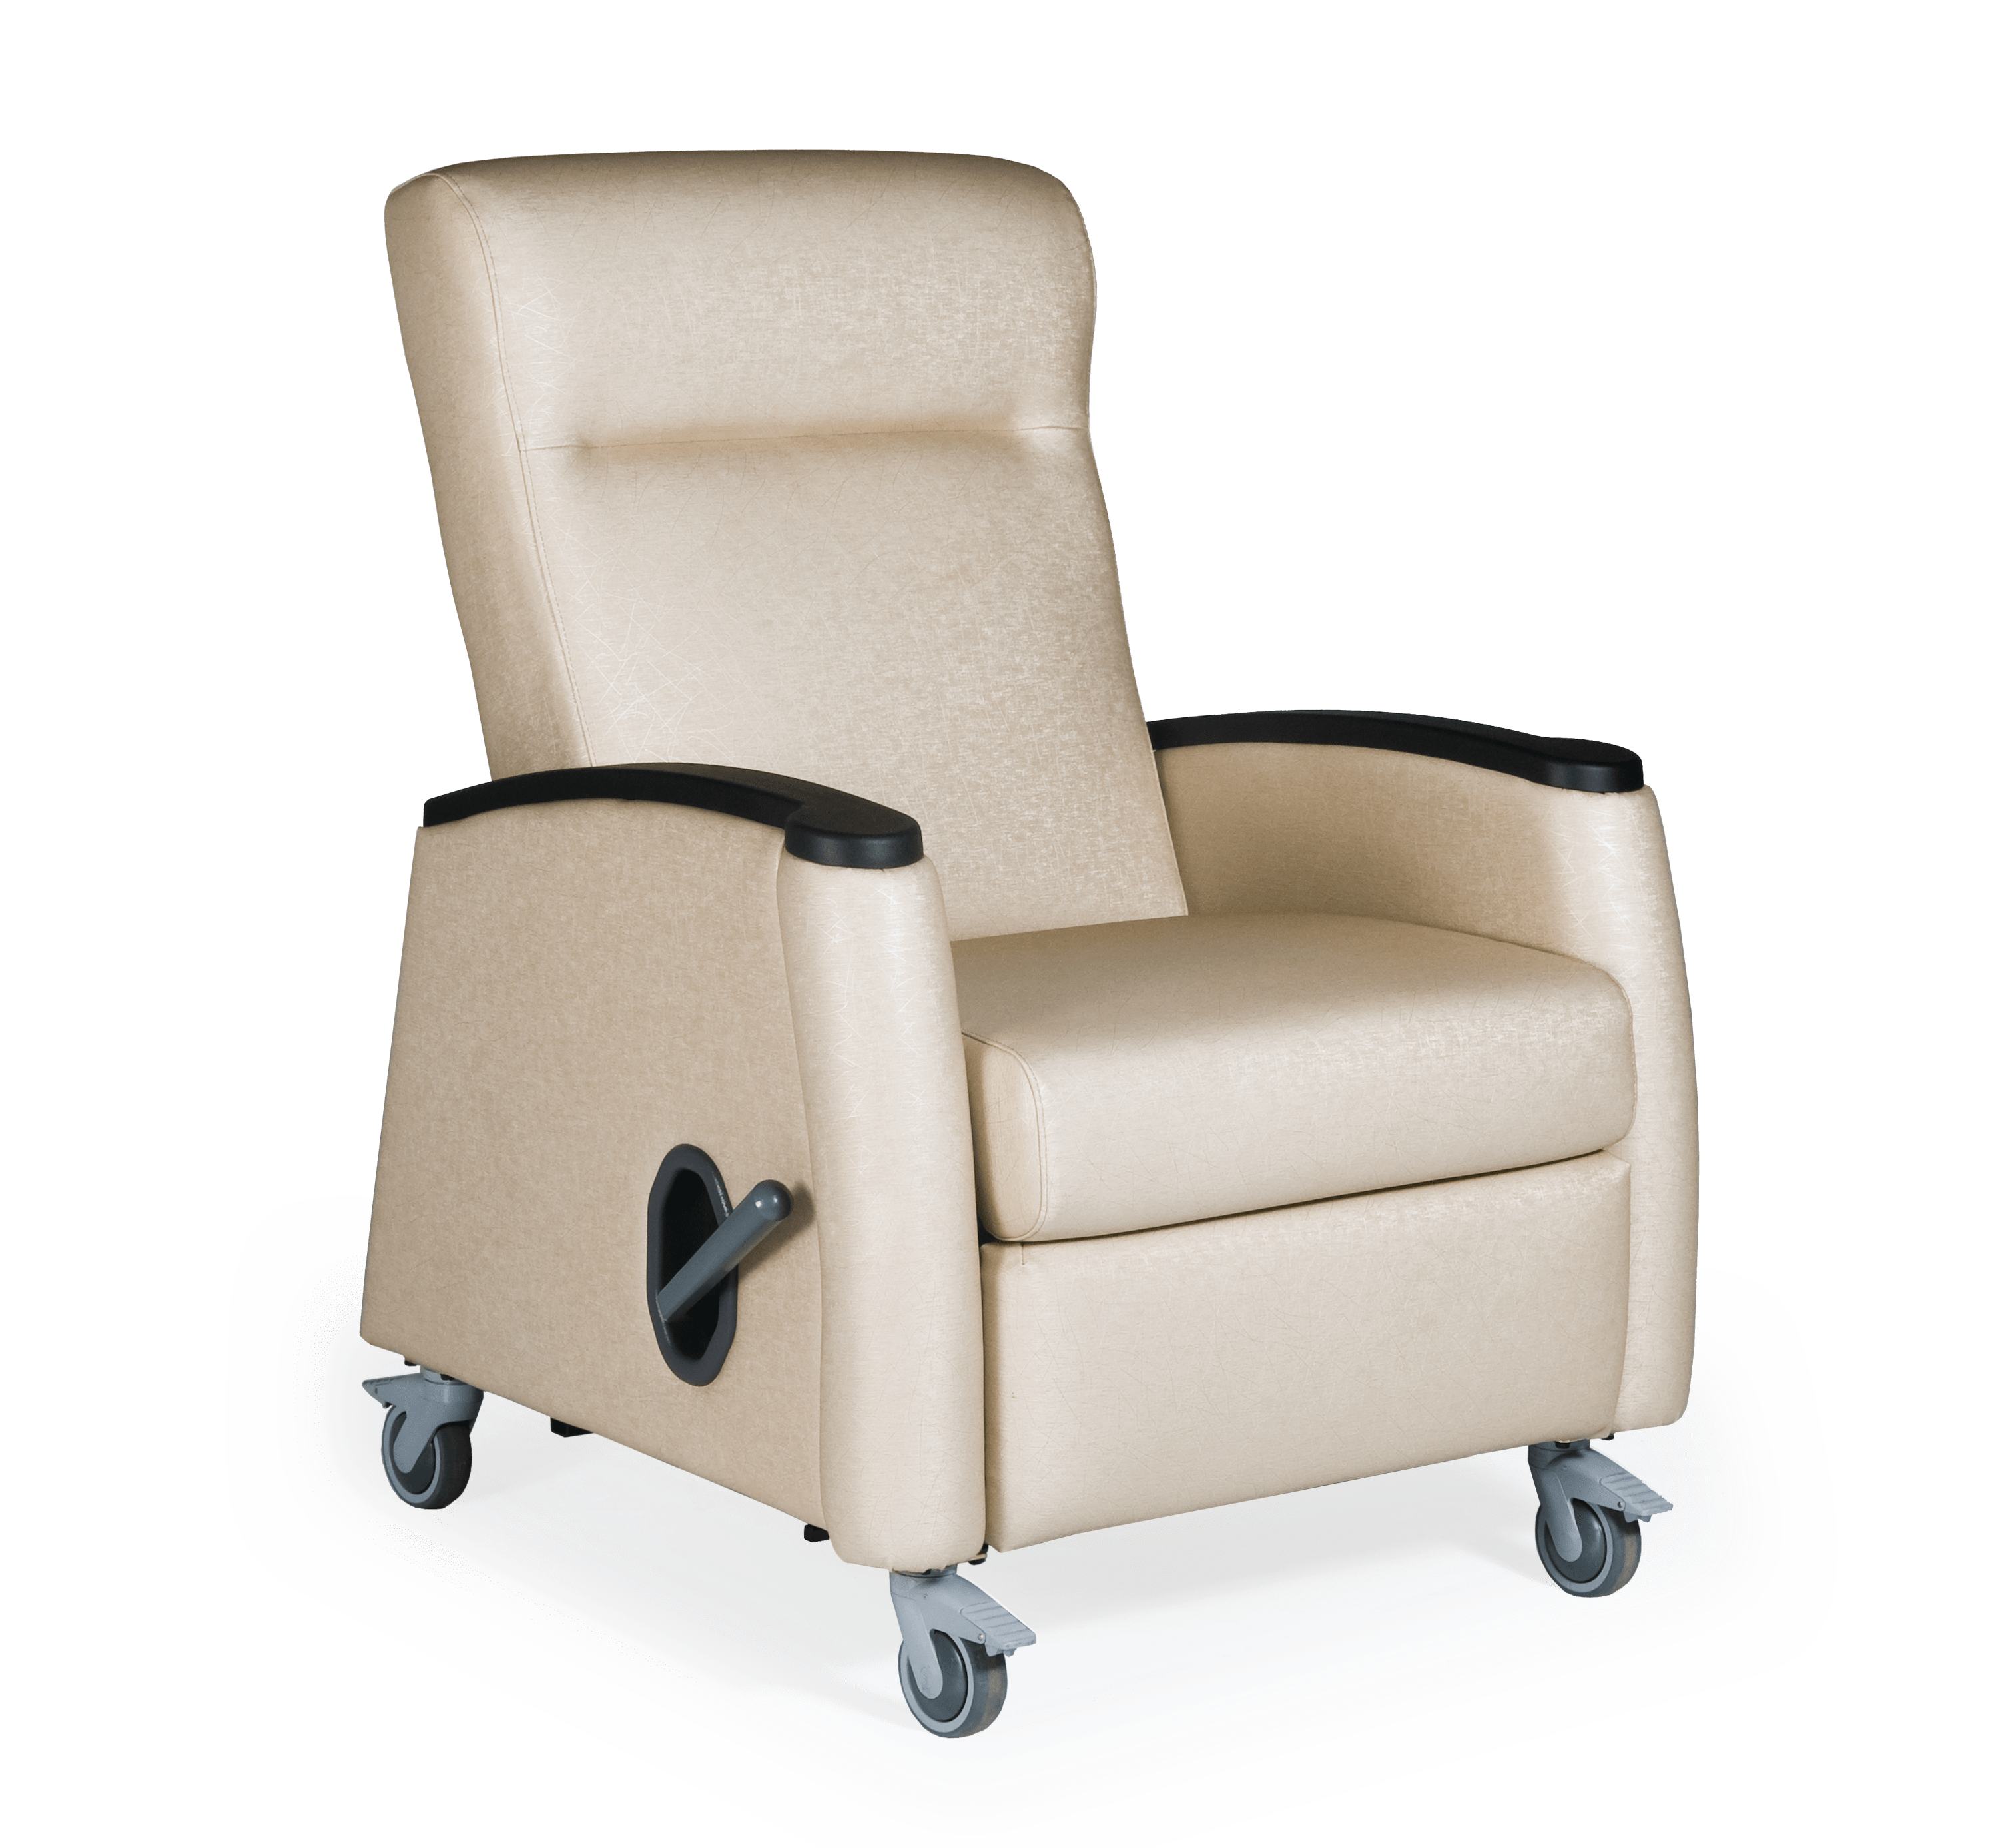 chairs for sleeping allsteel acuity chair review recliners and sleep indoff interior solutions